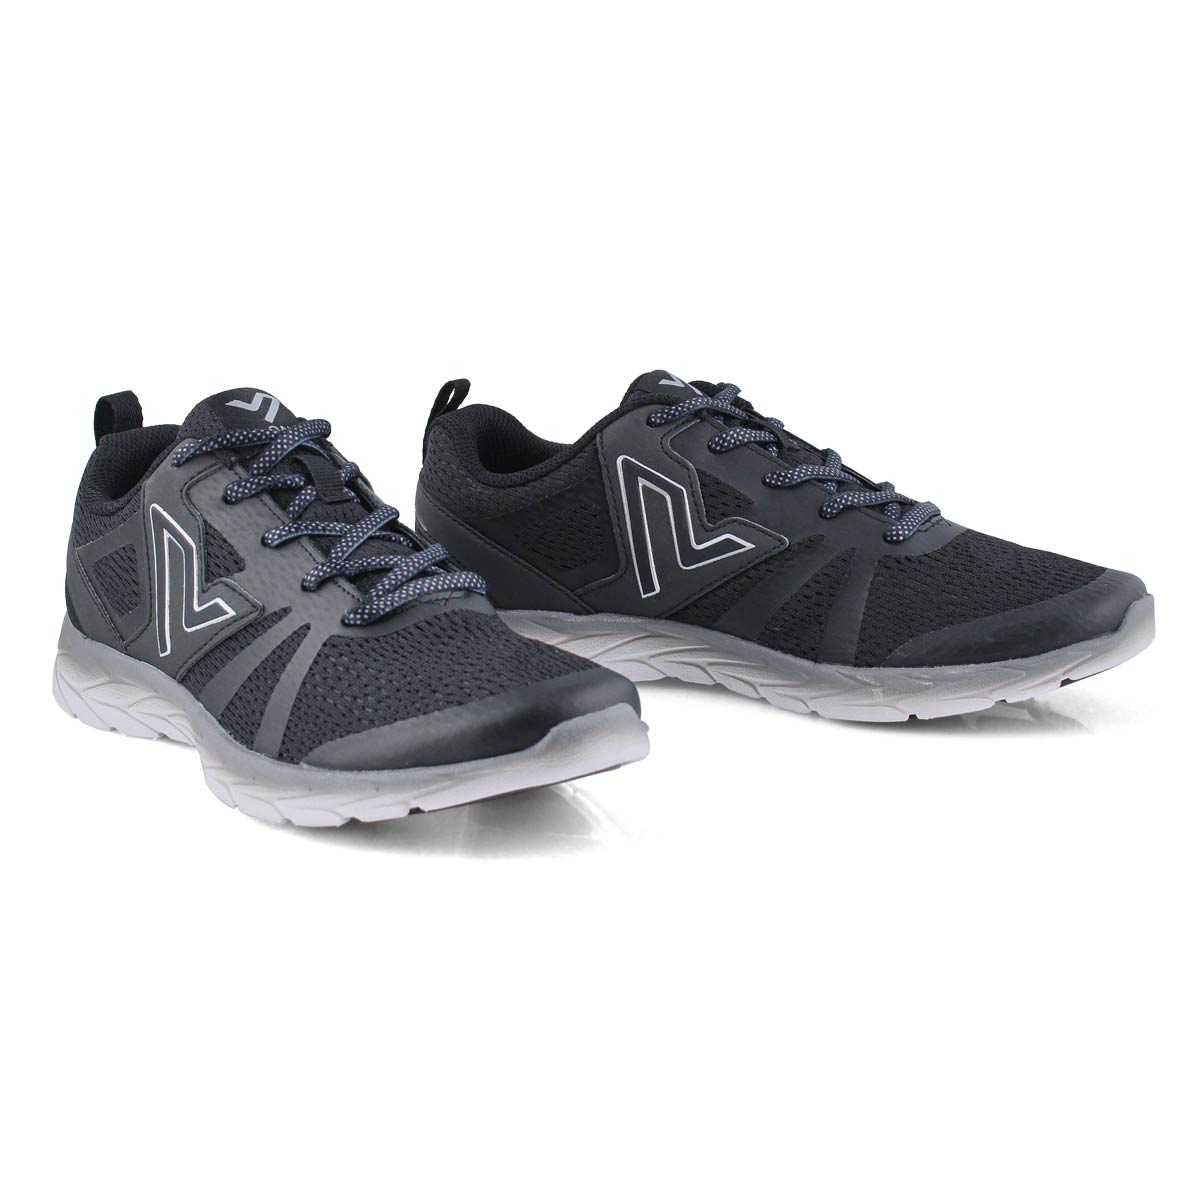 Lds 335Miles black running shoe